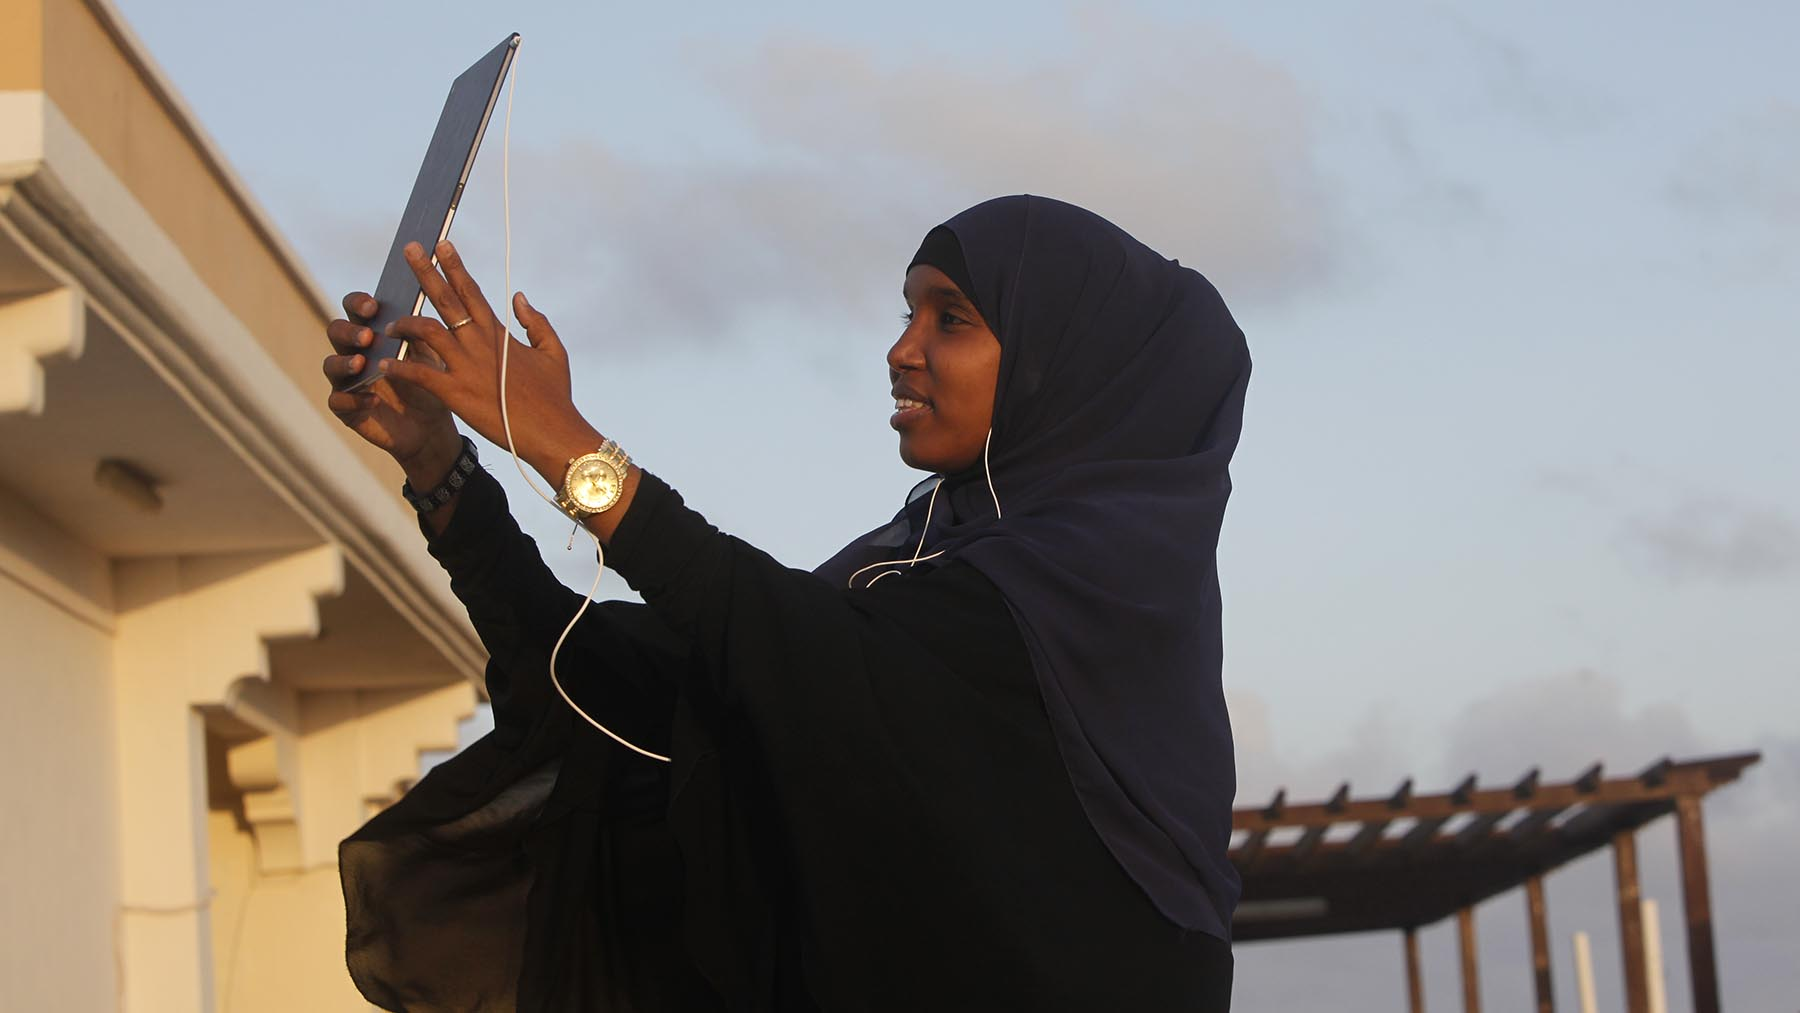 Photo of Zahra Qorane taking a selfie with a tablet.